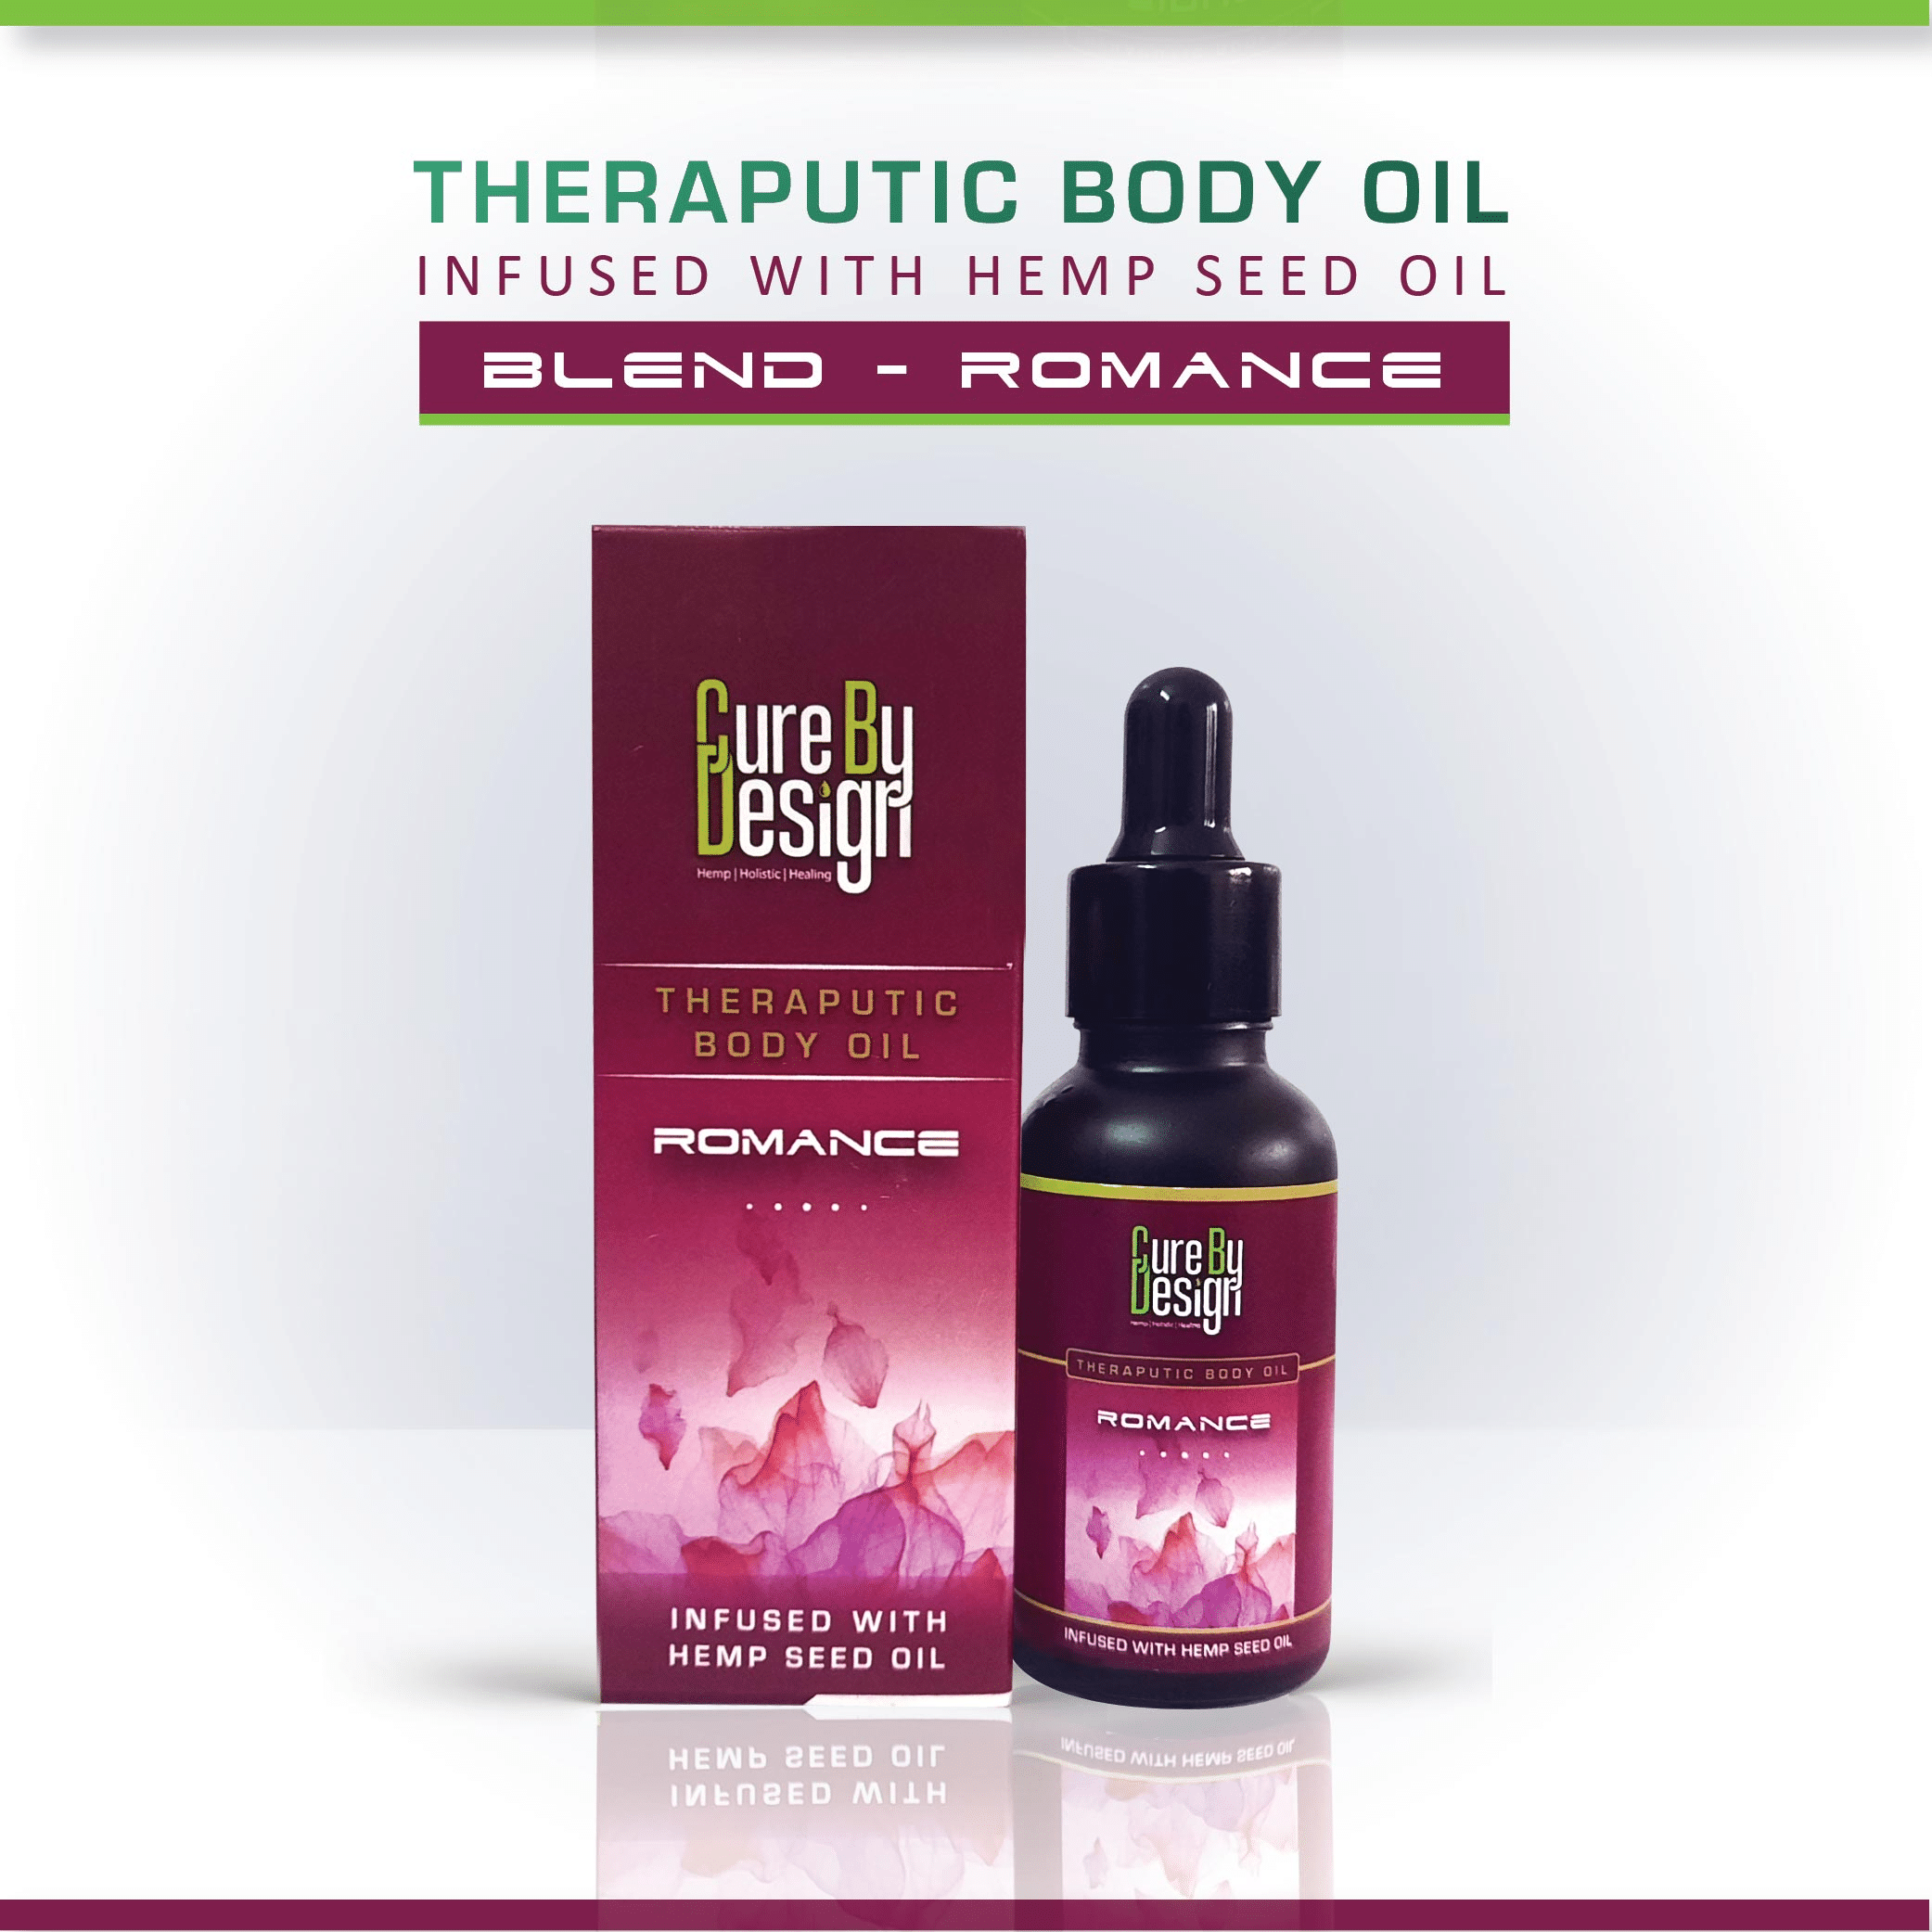 Cure By Design Therapeutic Body Oil for Romance